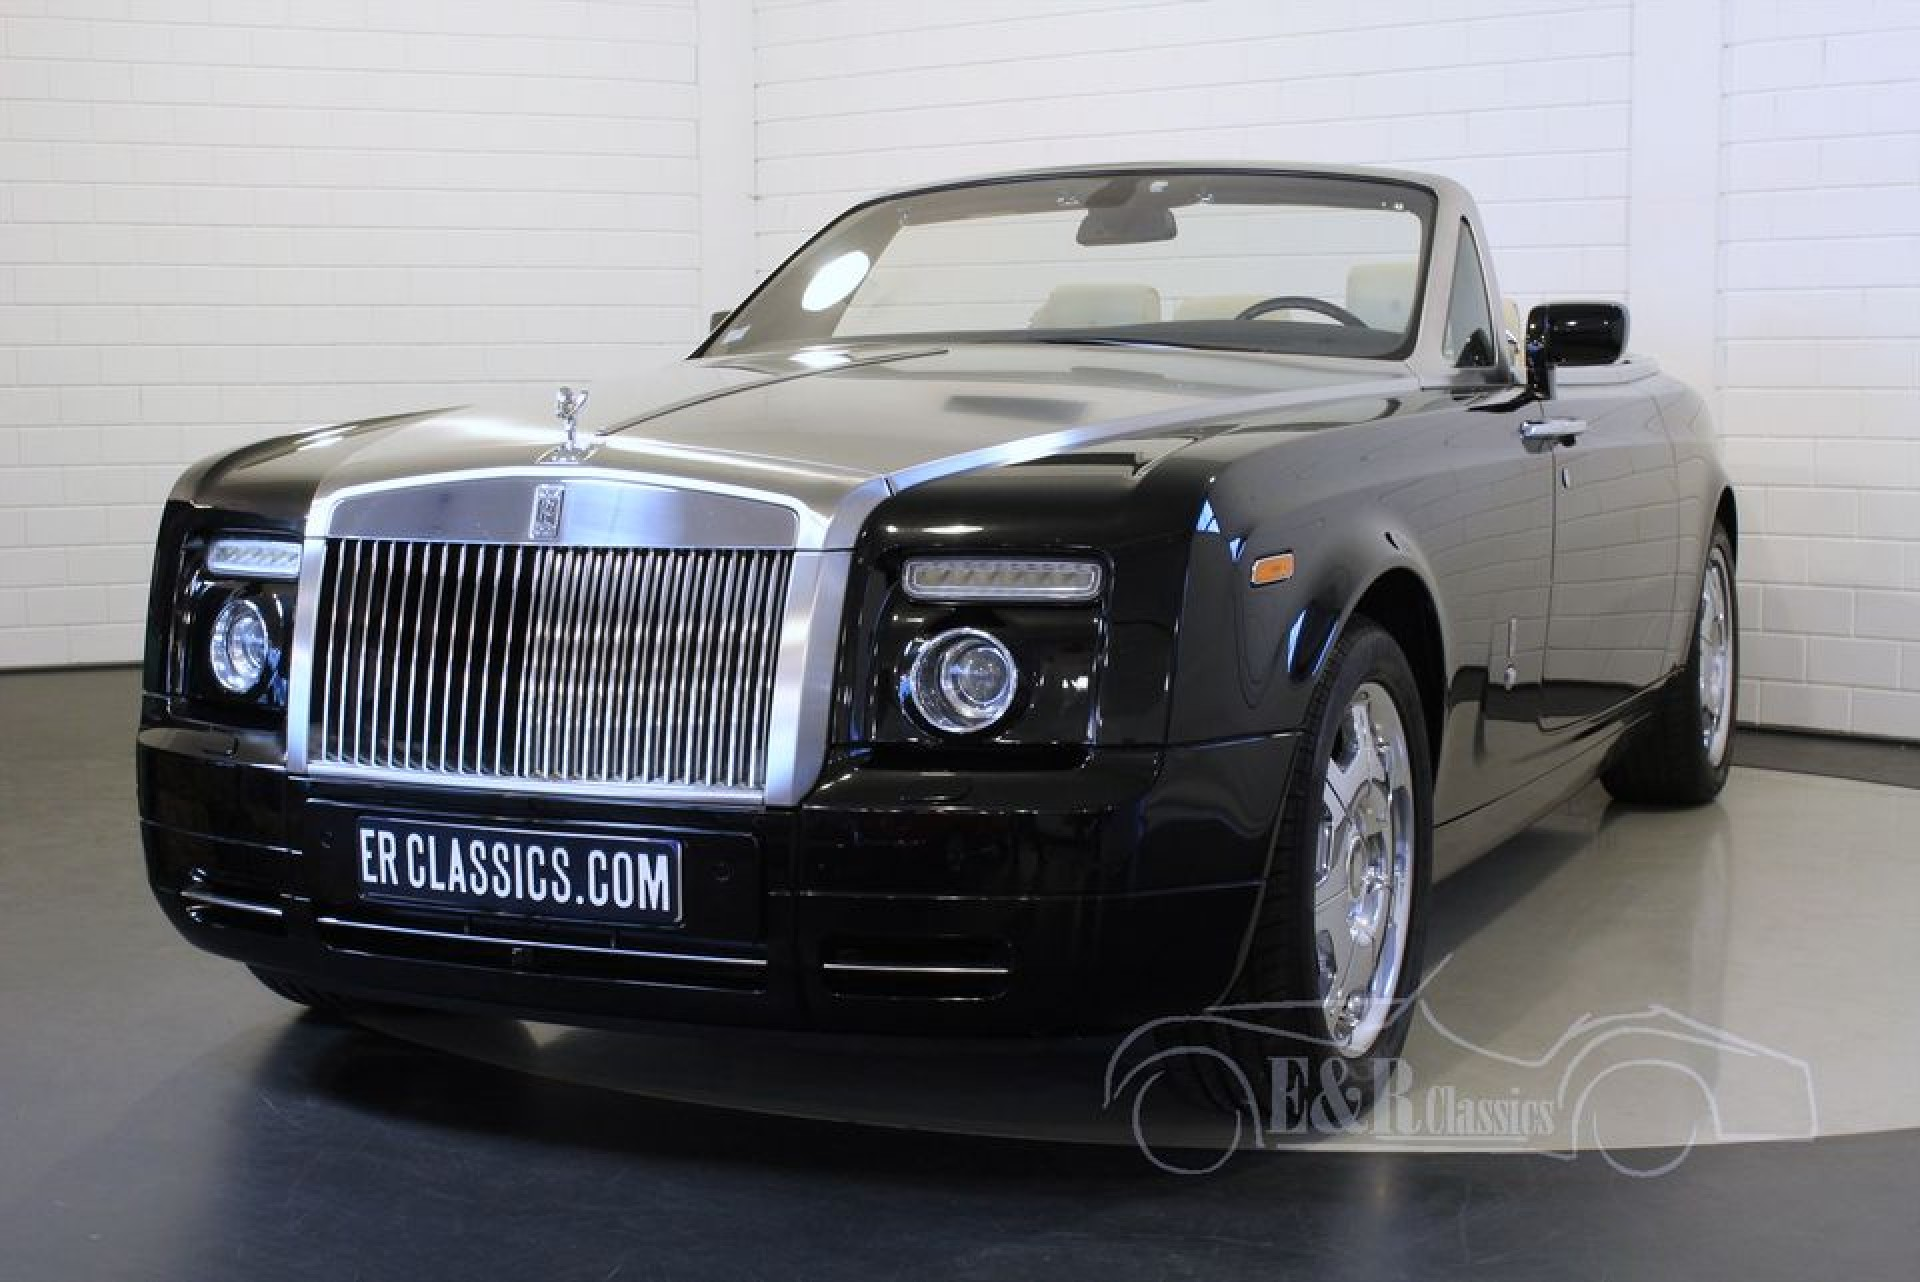 rolls royce phantom drophead 2008 vendre erclassics. Black Bedroom Furniture Sets. Home Design Ideas